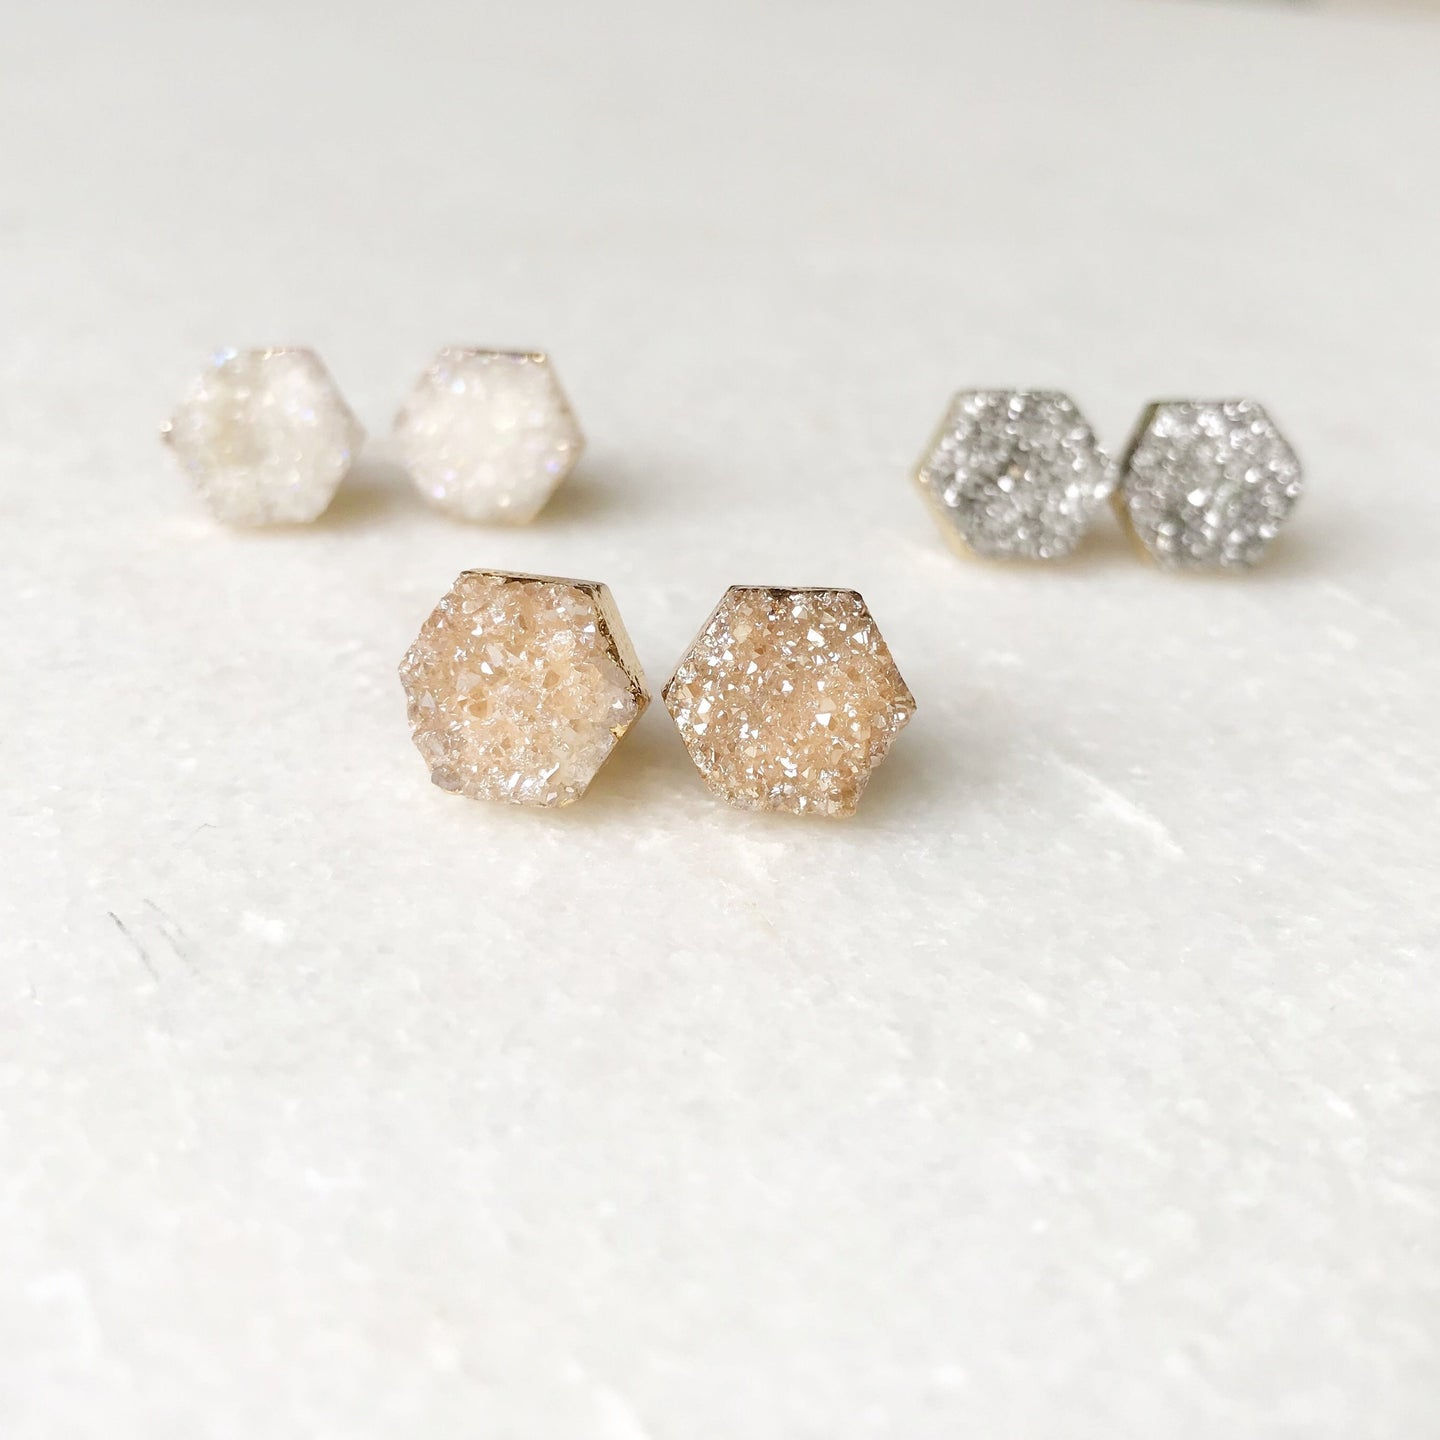 Druzy Hexagon Stud Earrings - Wondermint Goods